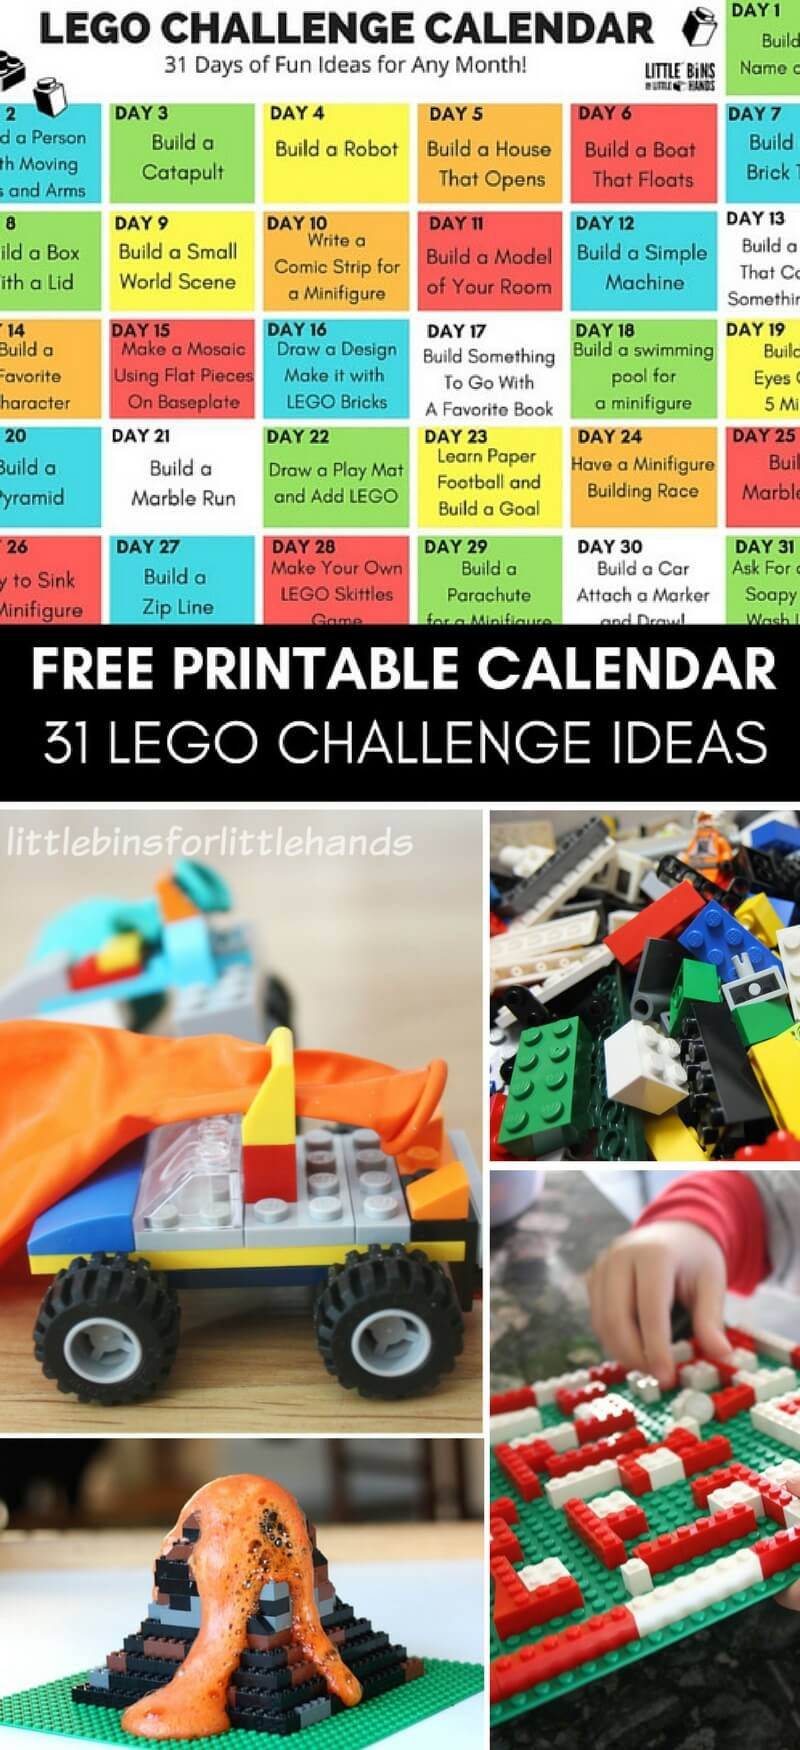 Printable Lego Challenges For Kids Little Bins For Little Hands